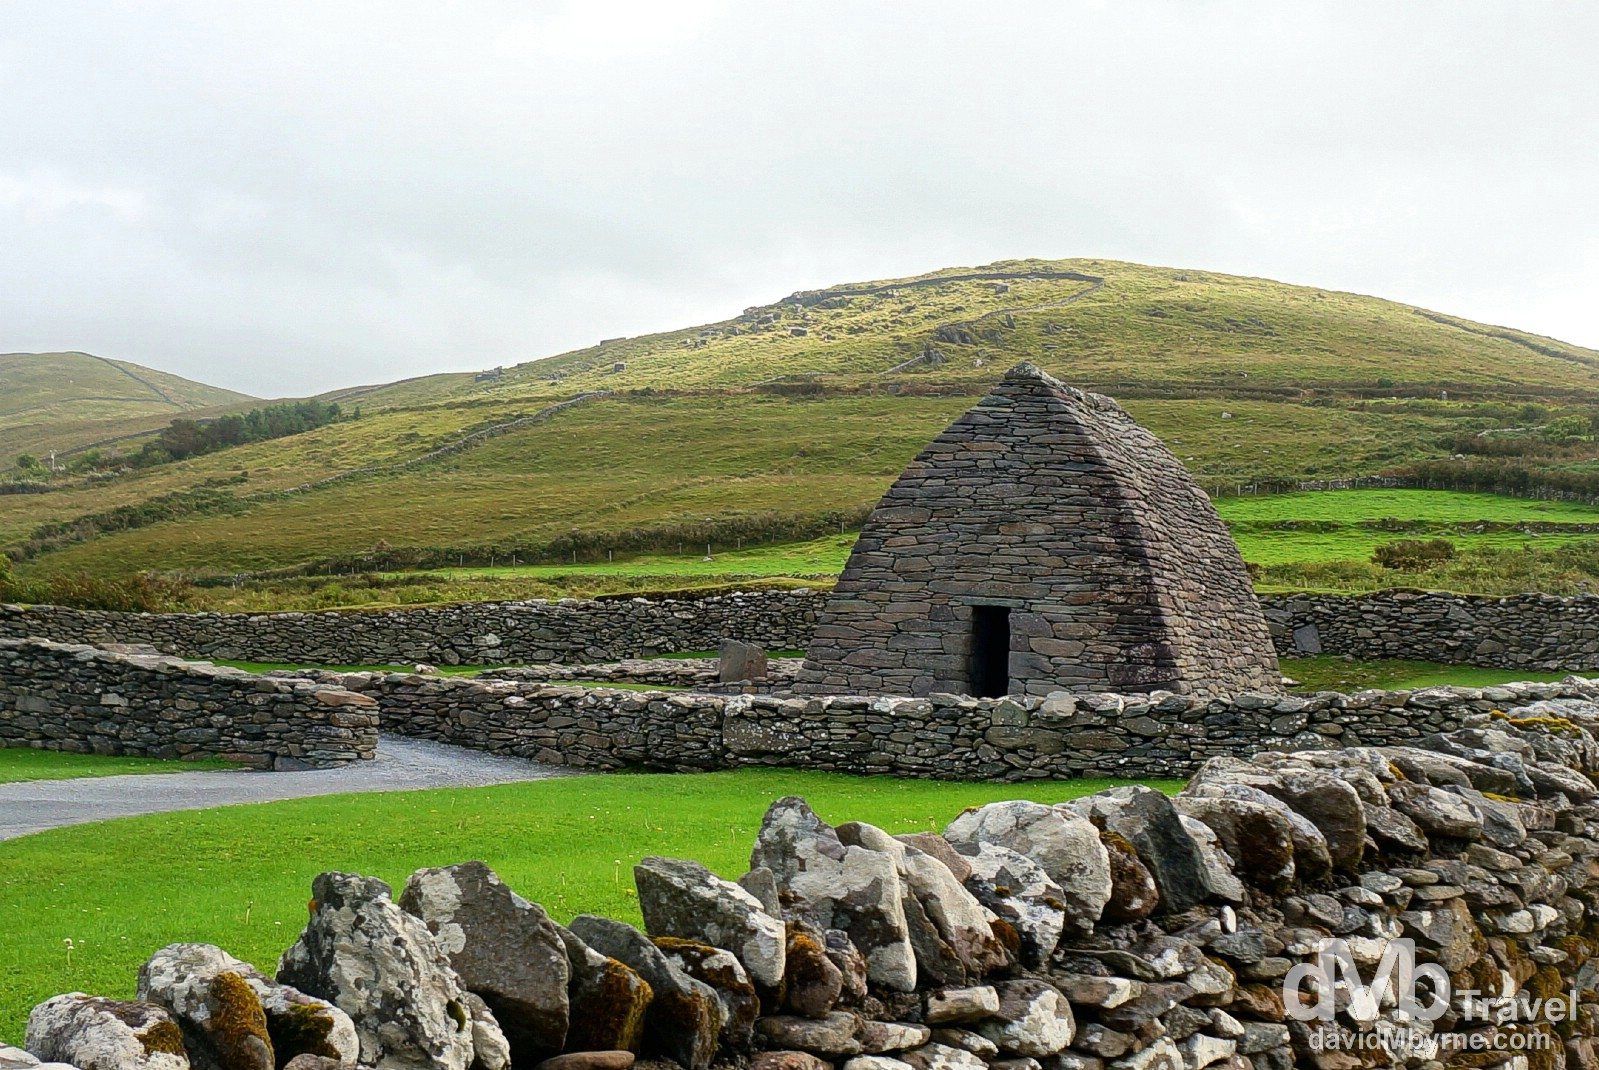 Gallarus Oratory, Dingle Peninsula, Co. Kerry, Ireland. August 28, 2014.